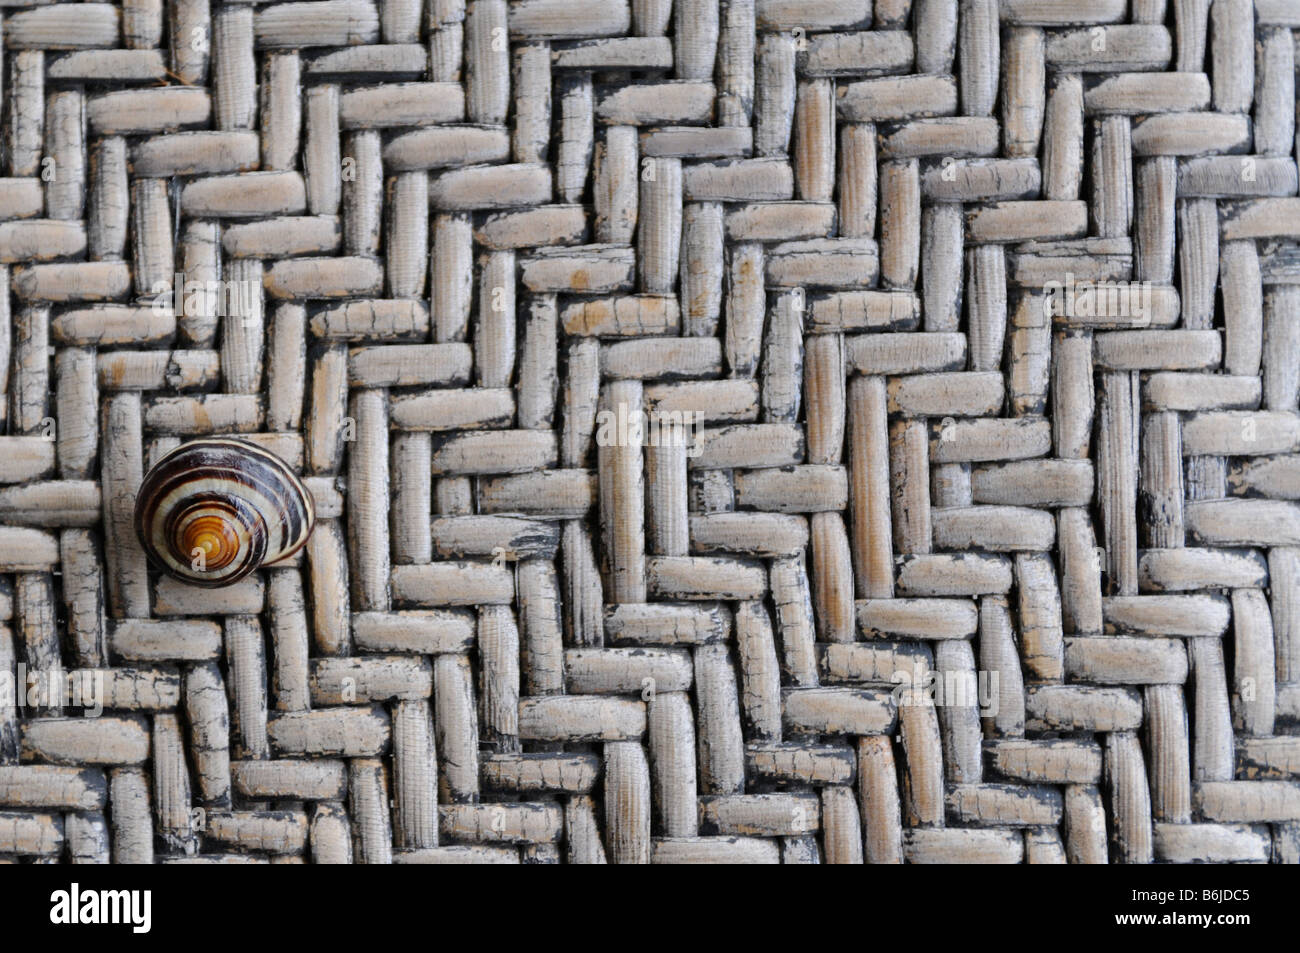 close-up detail of a common snail on a common wicker bench - Stock Image